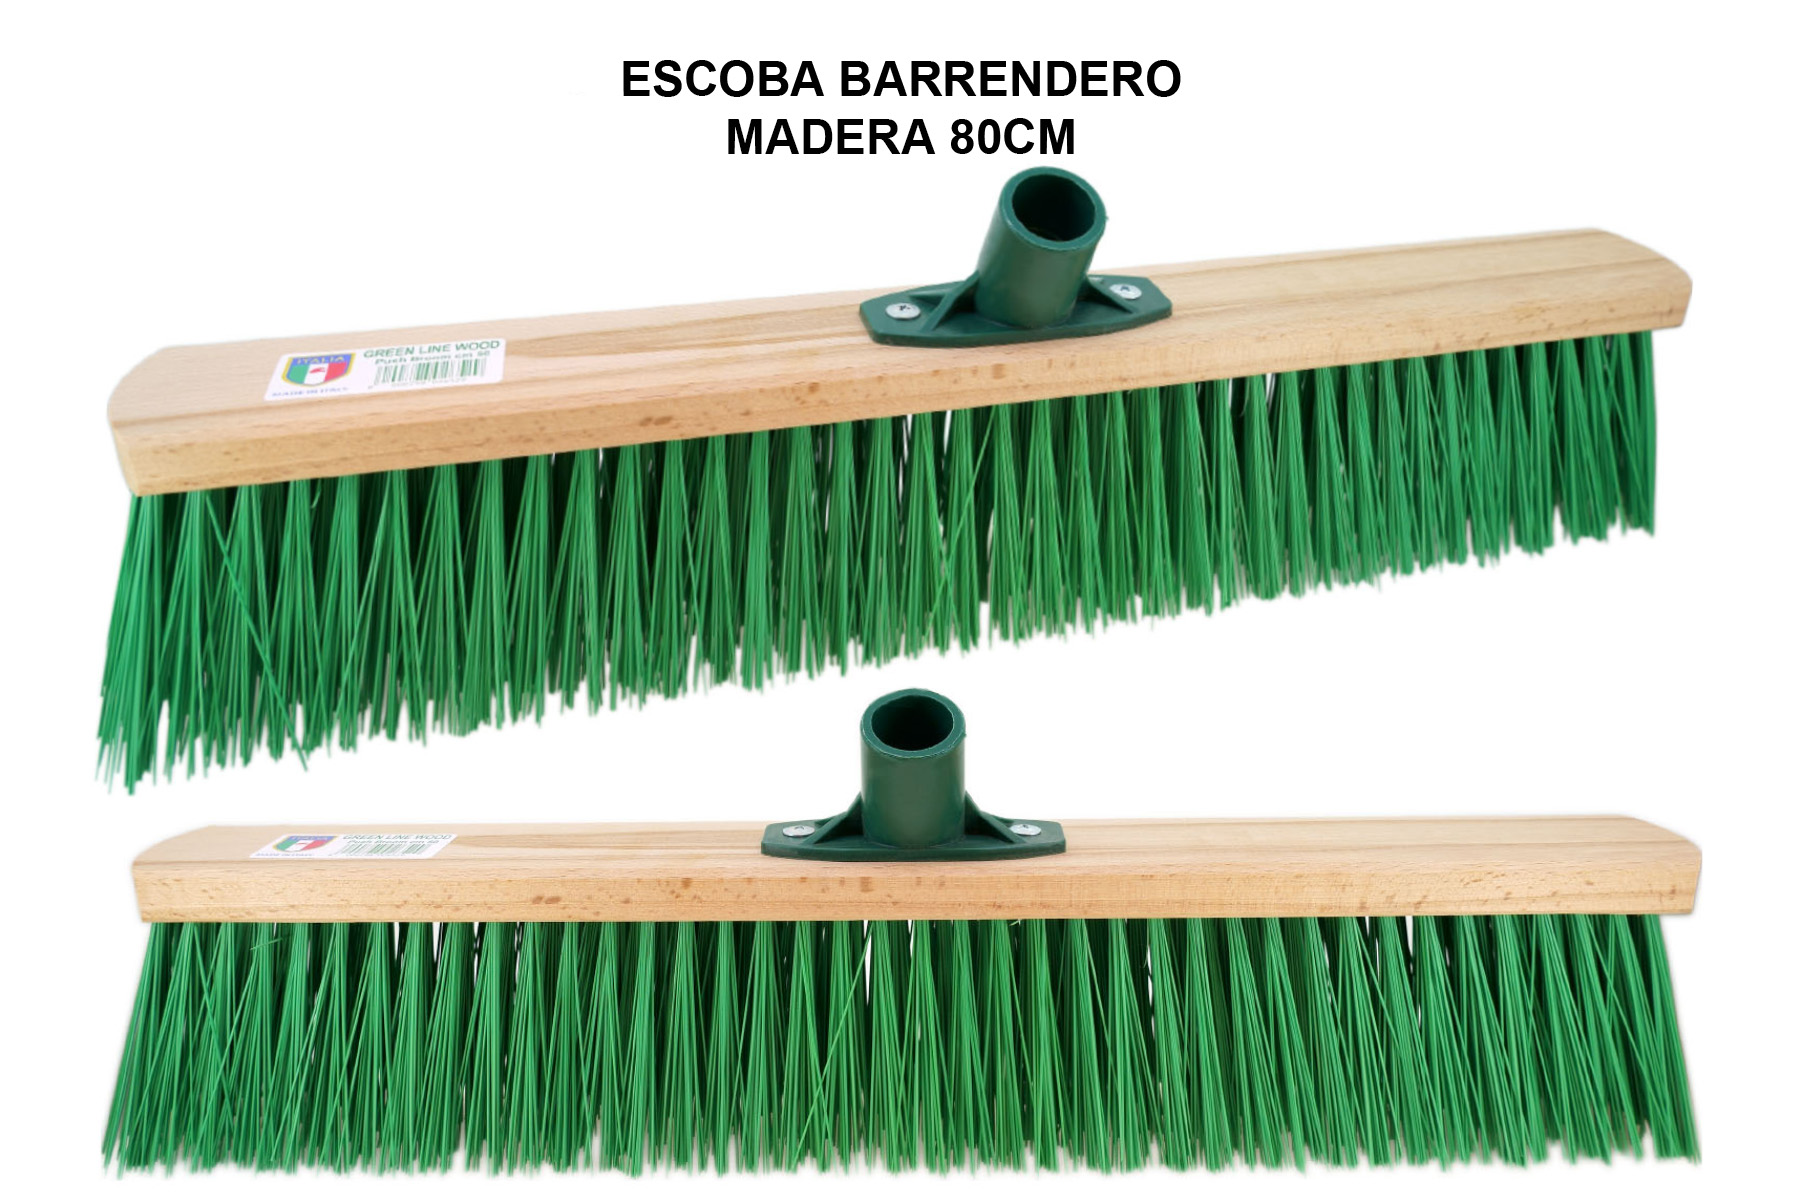 ESCOBA BARRENDERO MADERA 80 CM